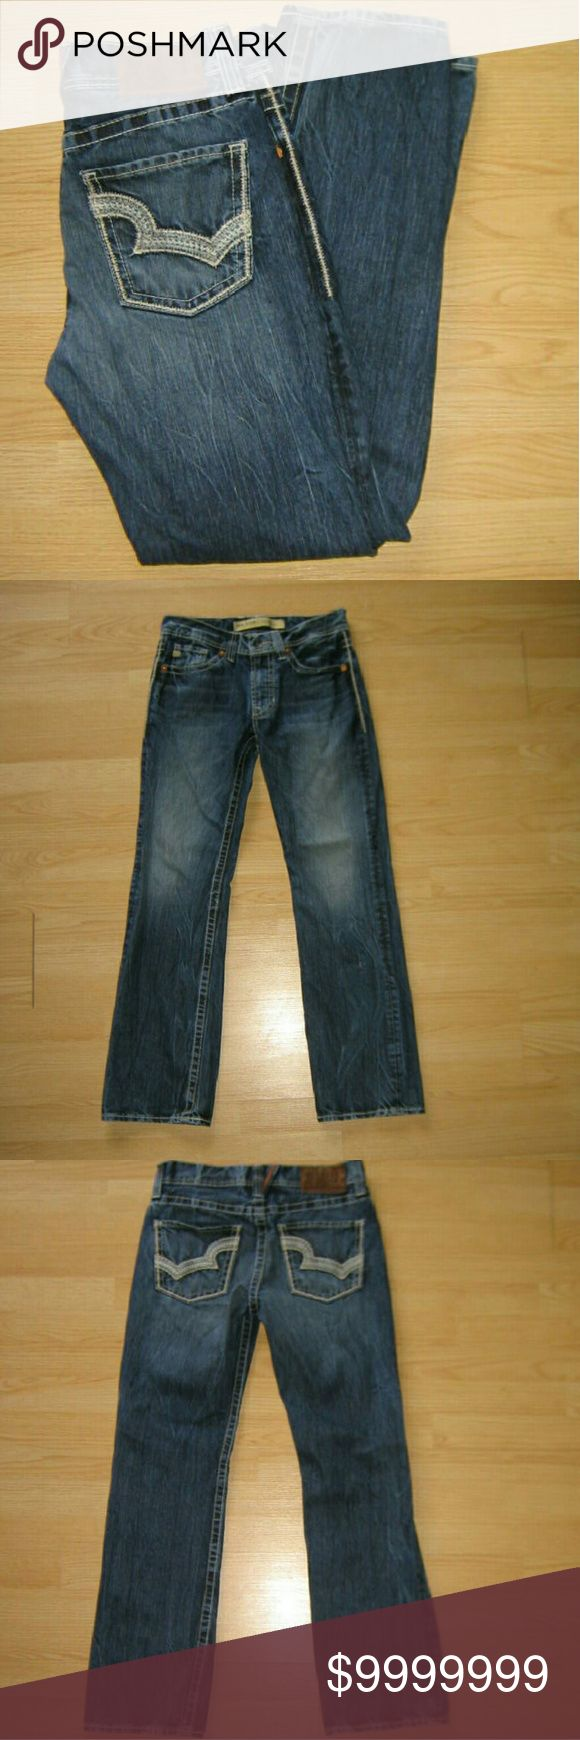 """Big Star Pioneer Bootcut Men's Jeans These jeans are preloved but still in very good condition. These are the Pioneer Regular Boot Cut jeans. Designed exclusively for Buckle. Made of 100% cotton. Tag size  is 31R.  Waist across with natural dip is 15.5"""" Waist across when aligned is 16"""" Front Rise is 9.5"""" Inseam is 32"""" Big Star Jeans Bootcut"""